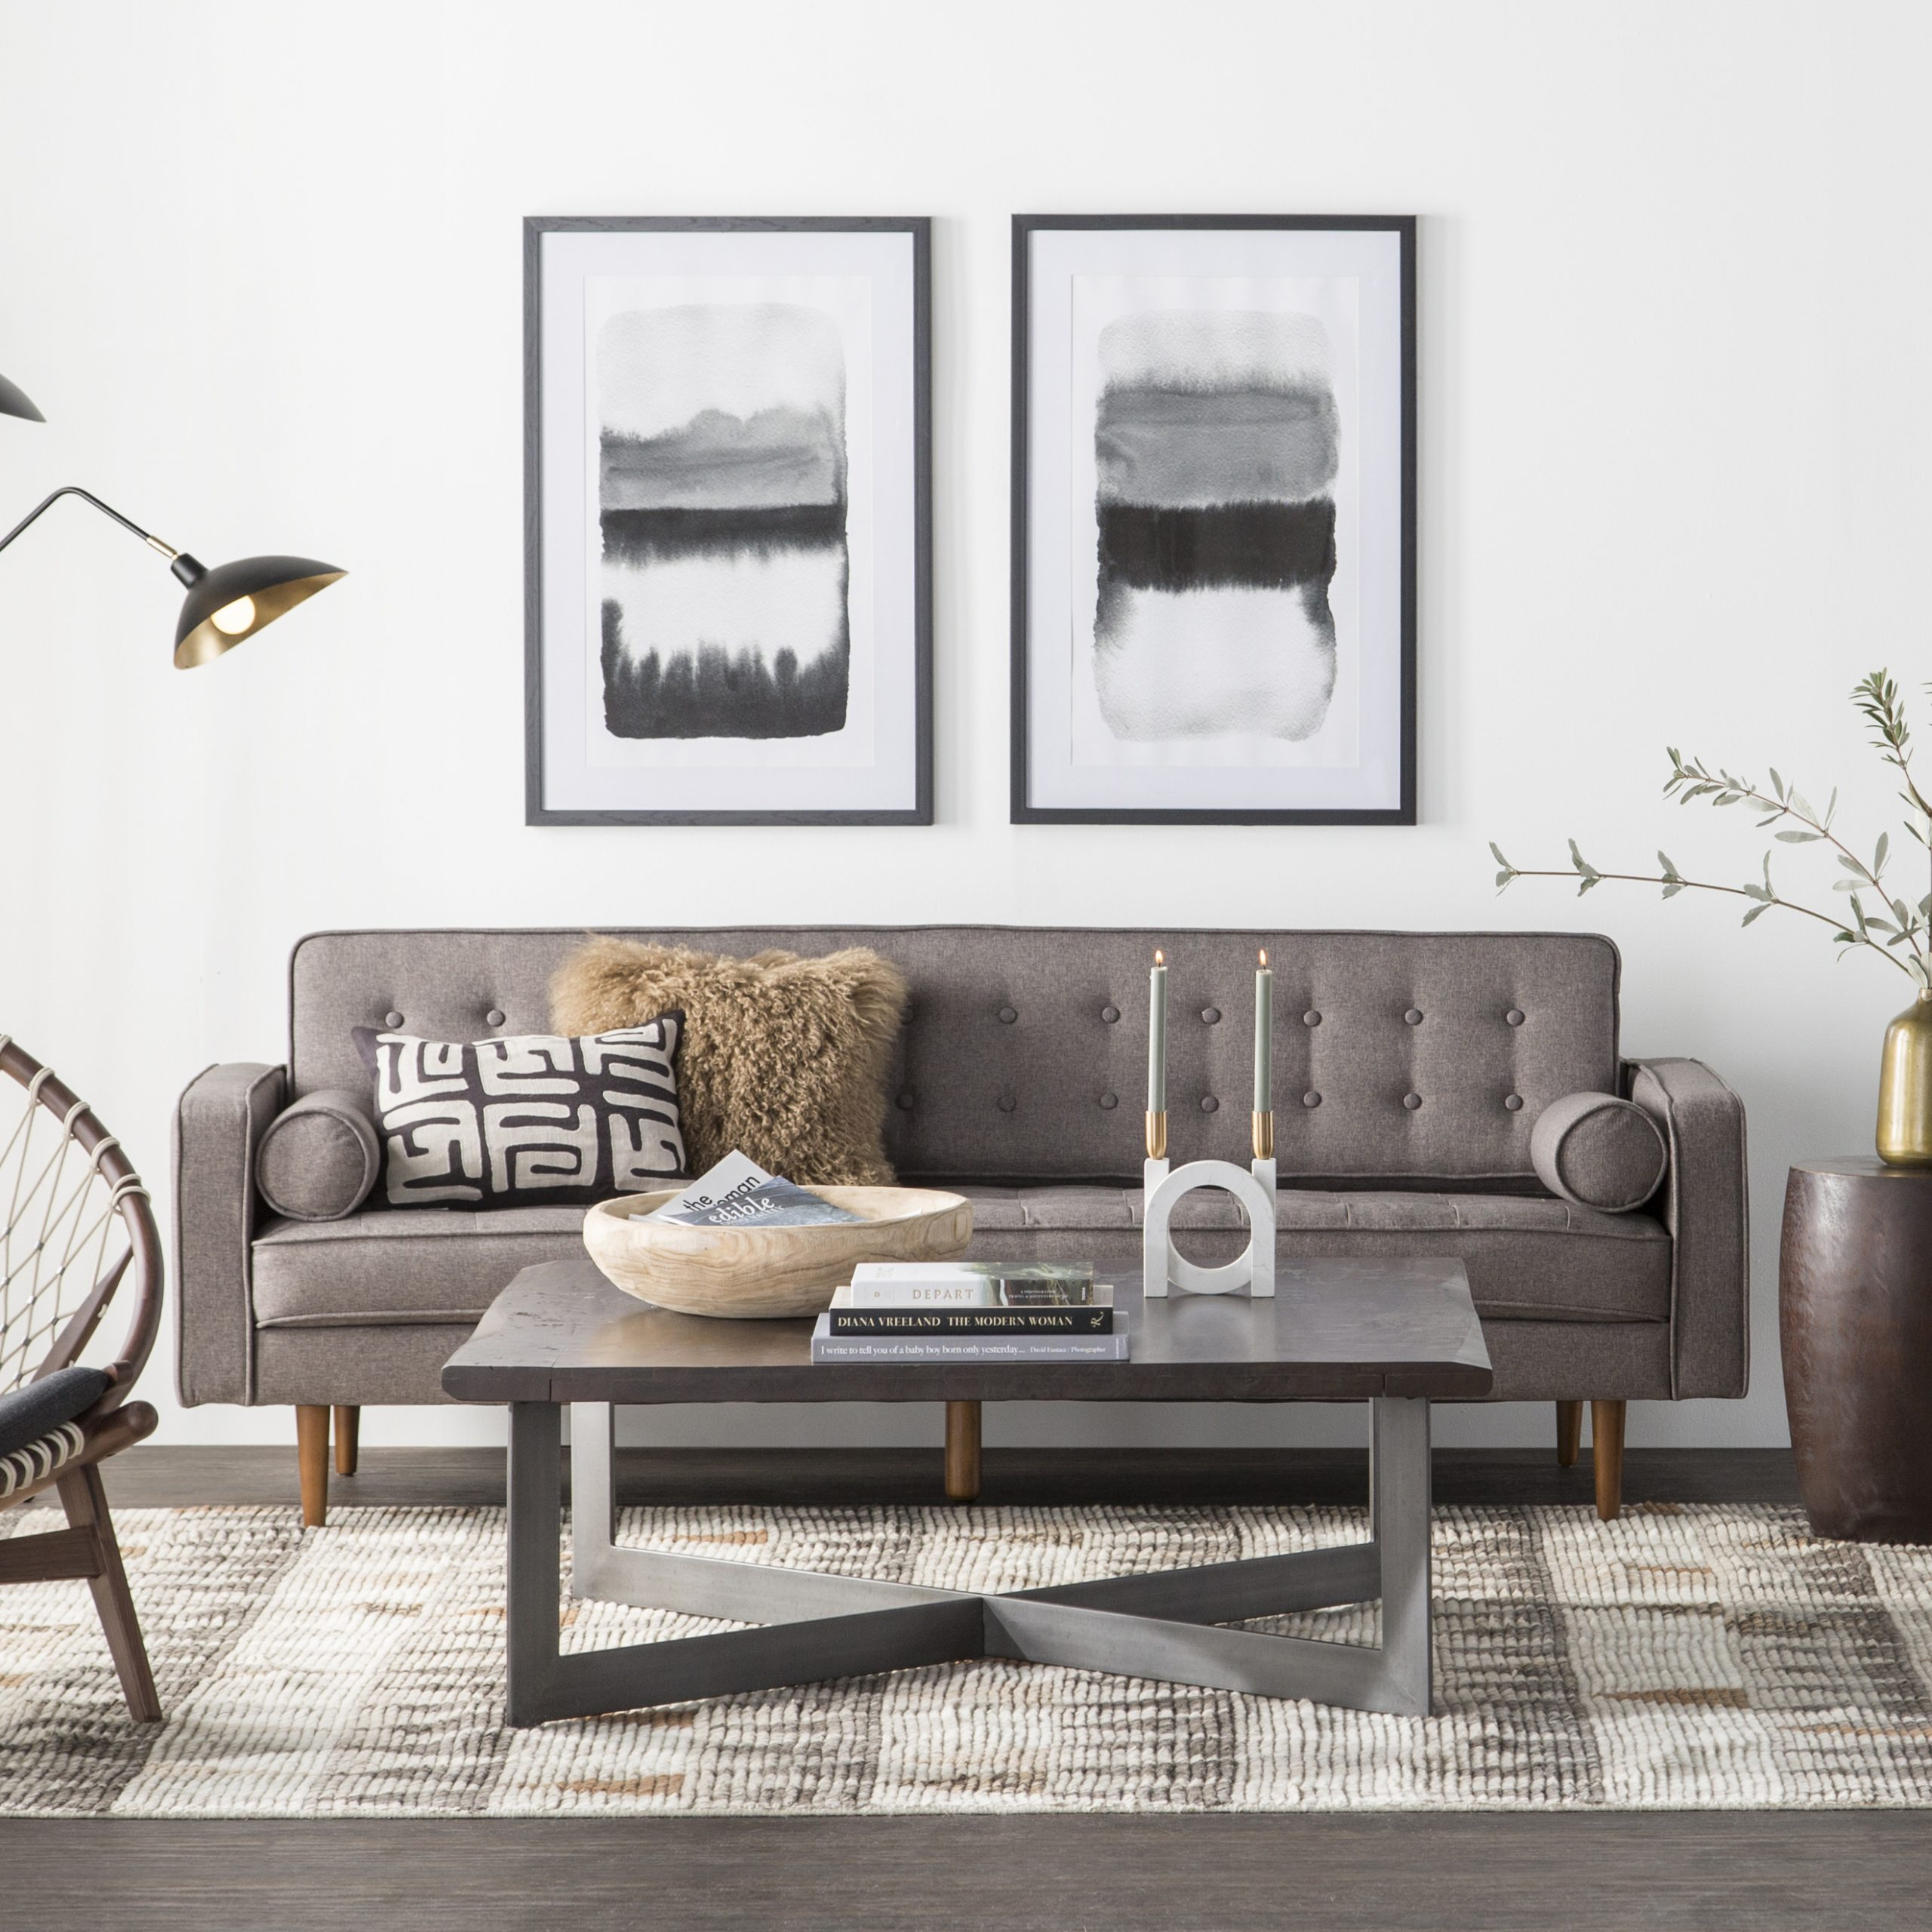 Best Websites For Online Furniture Shopping   My Decorative With Contemporary Sofas And Chairs (View 4 of 15)